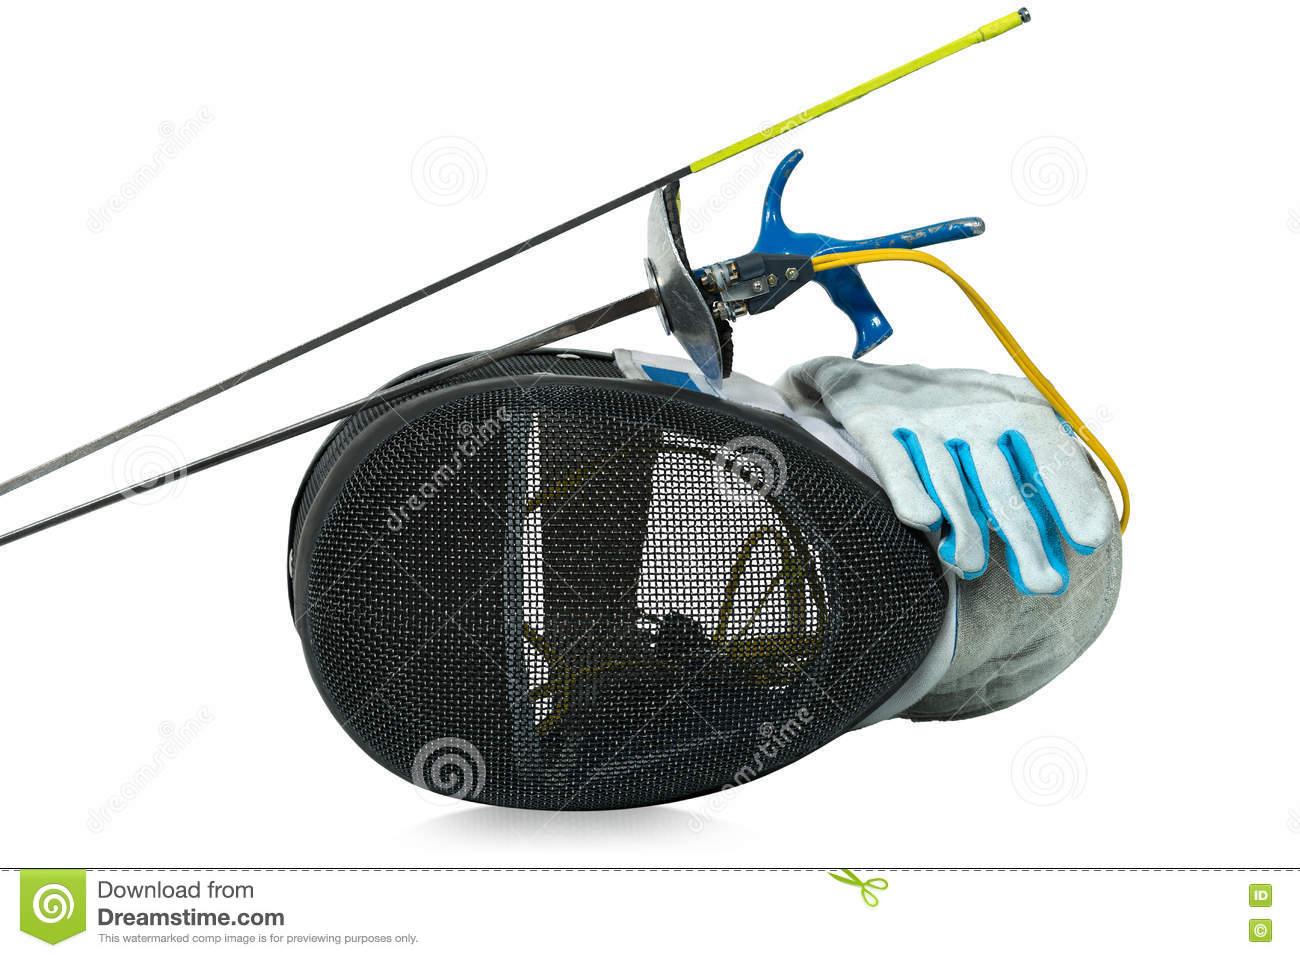 Fencing Foil Equipment Isolated On White Stock Photo ...